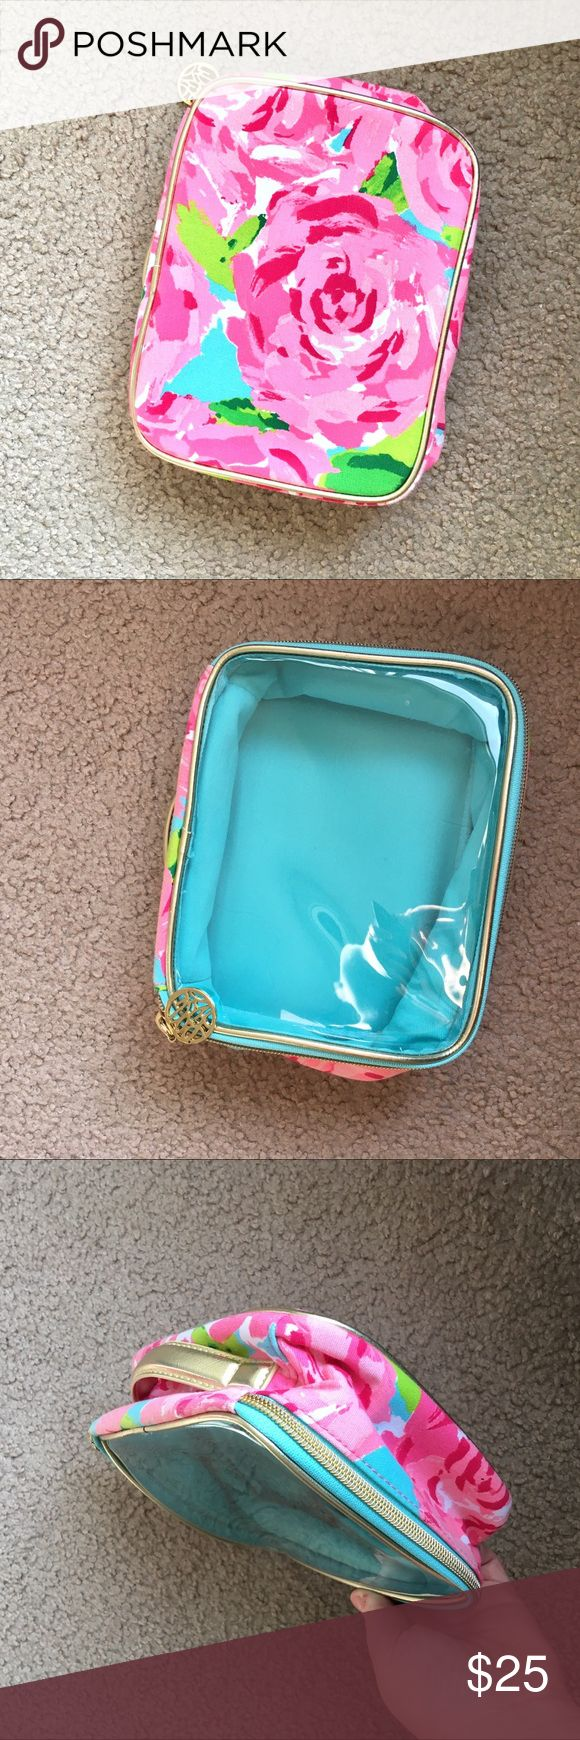 Lilly Pulitzer makeup cosmetic bag clear top rose | Lilly ...